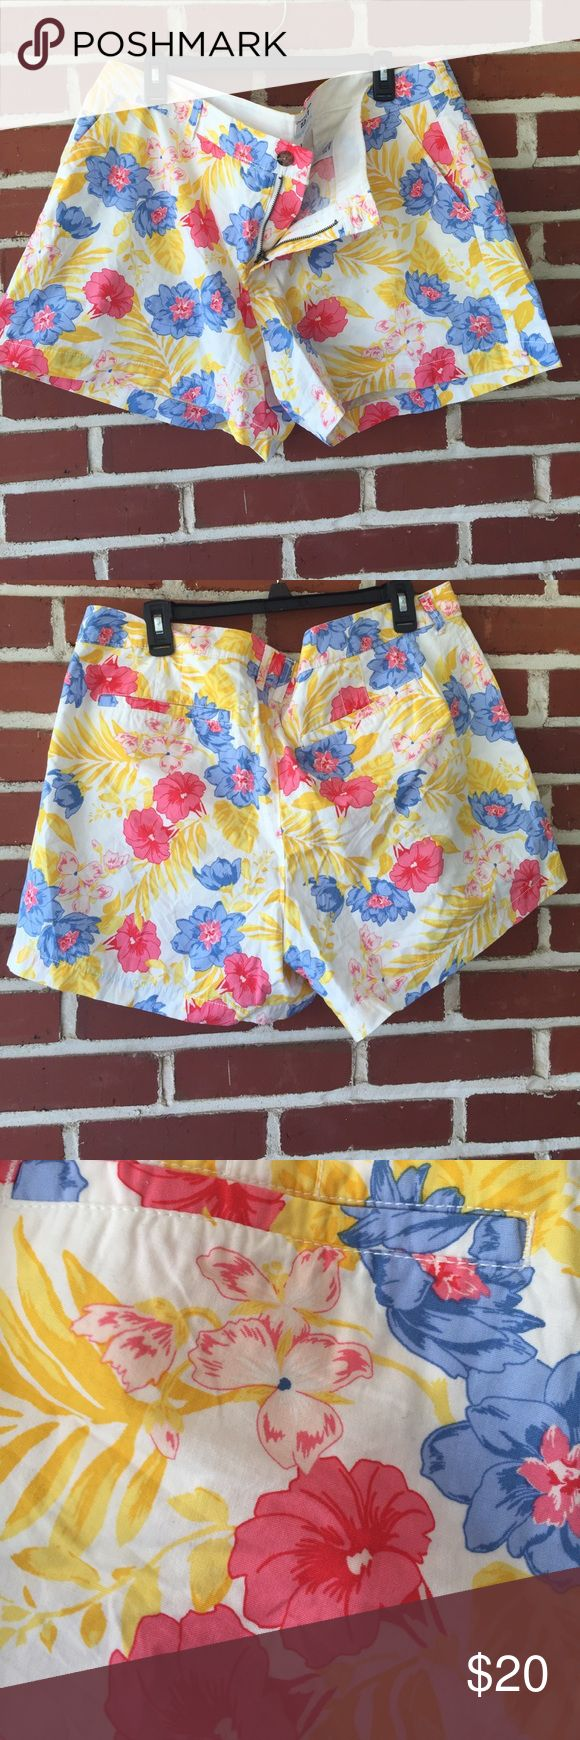 Floral Old Navy Shorts Women's Size 18 NWOT Never worn women's old Navy shorts. Size 18, like new. Old Navy Shorts